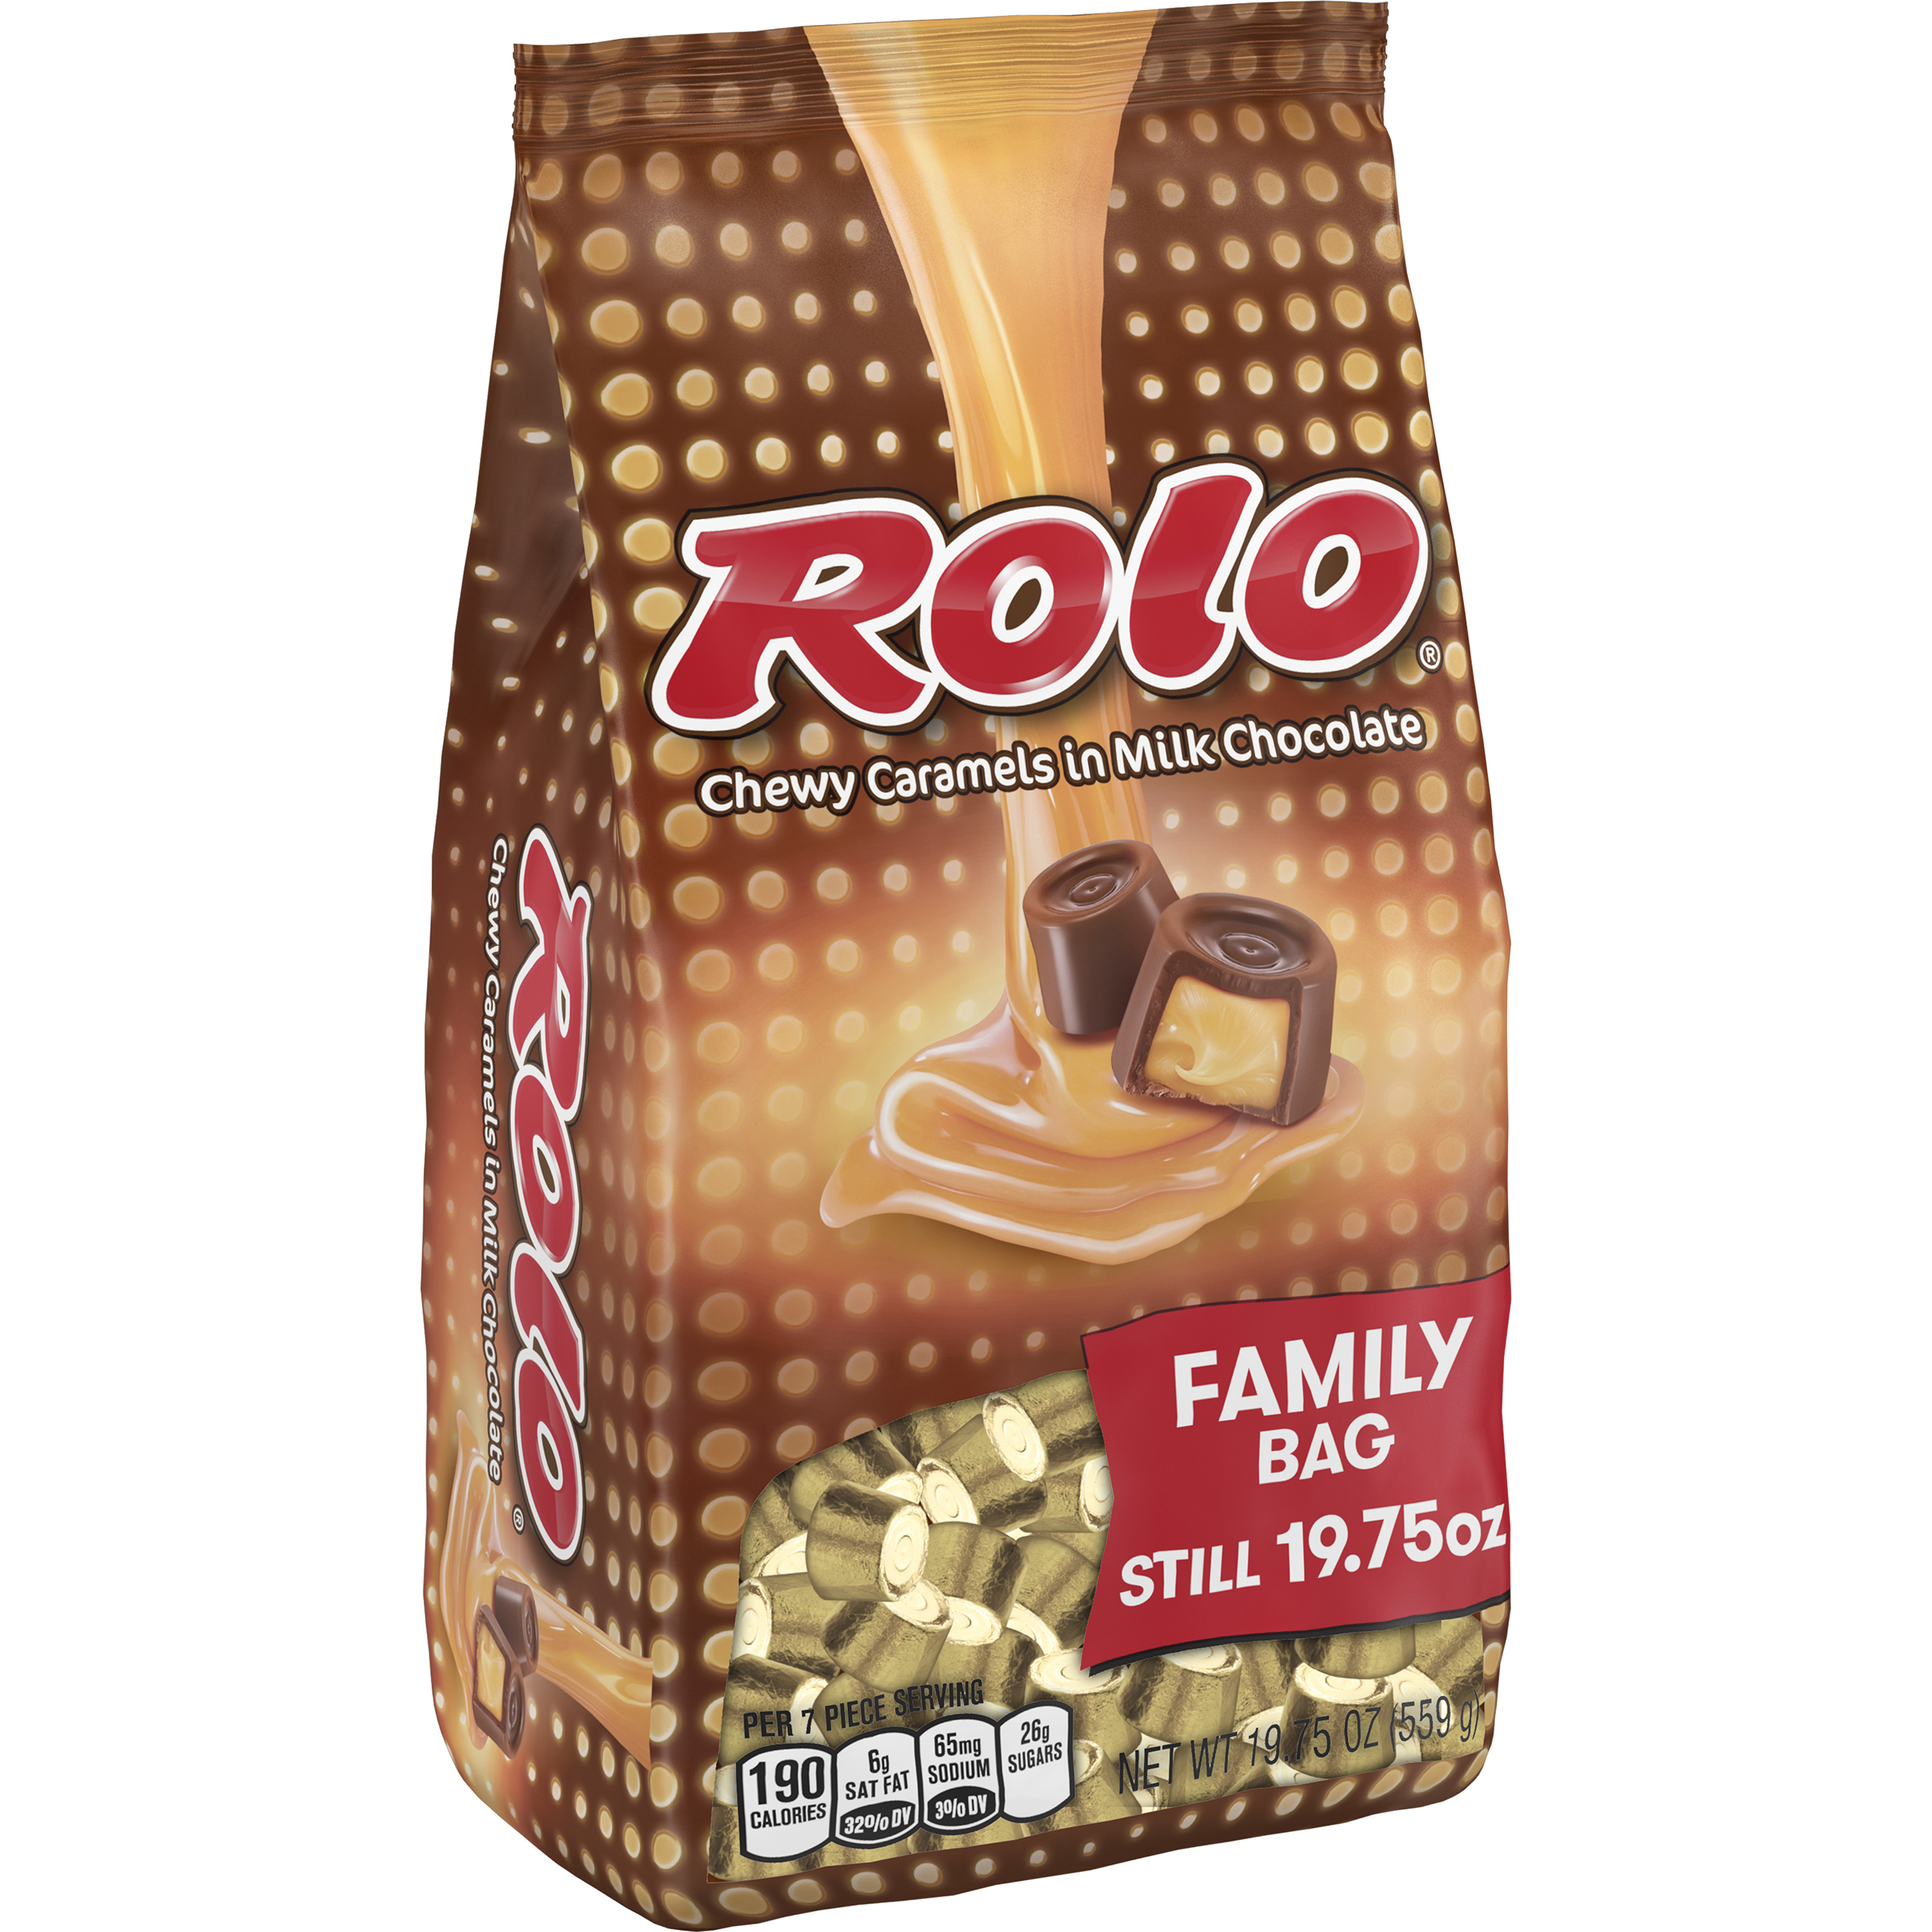 ROLO Chewy Caramels in Milk Chocolate, 19.75 oz by Hershey's